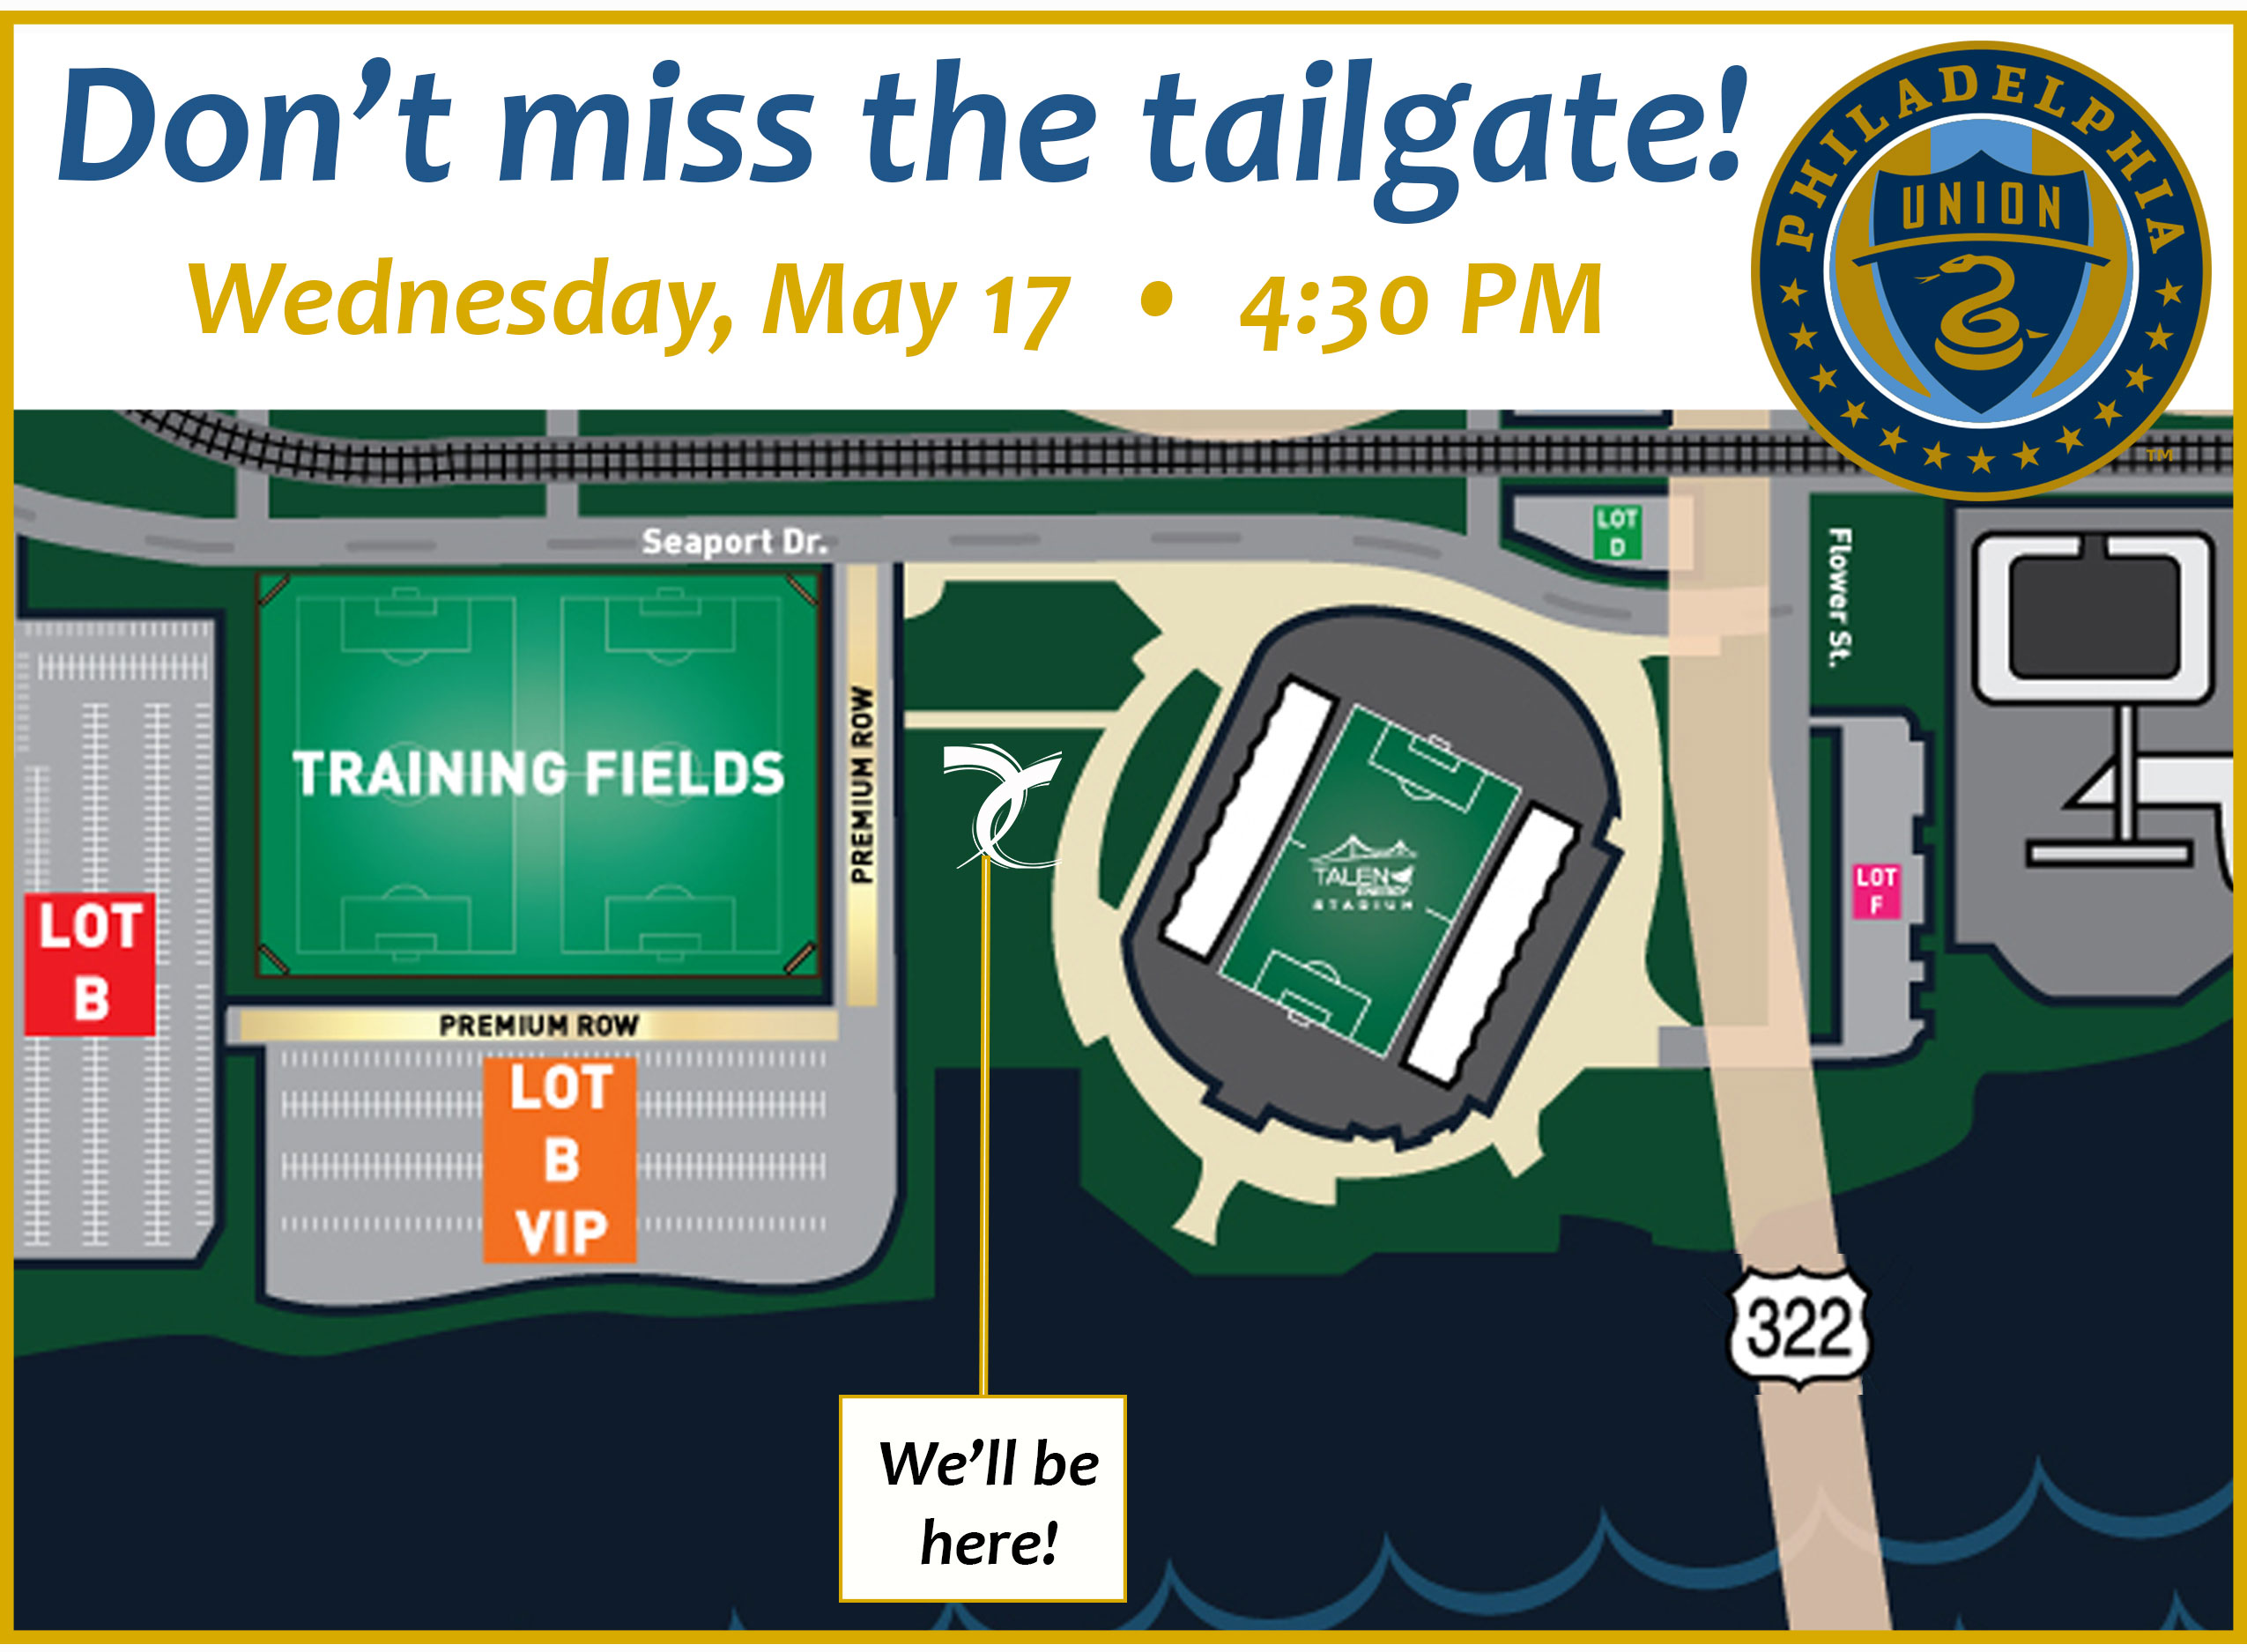 Tailgate May 17th